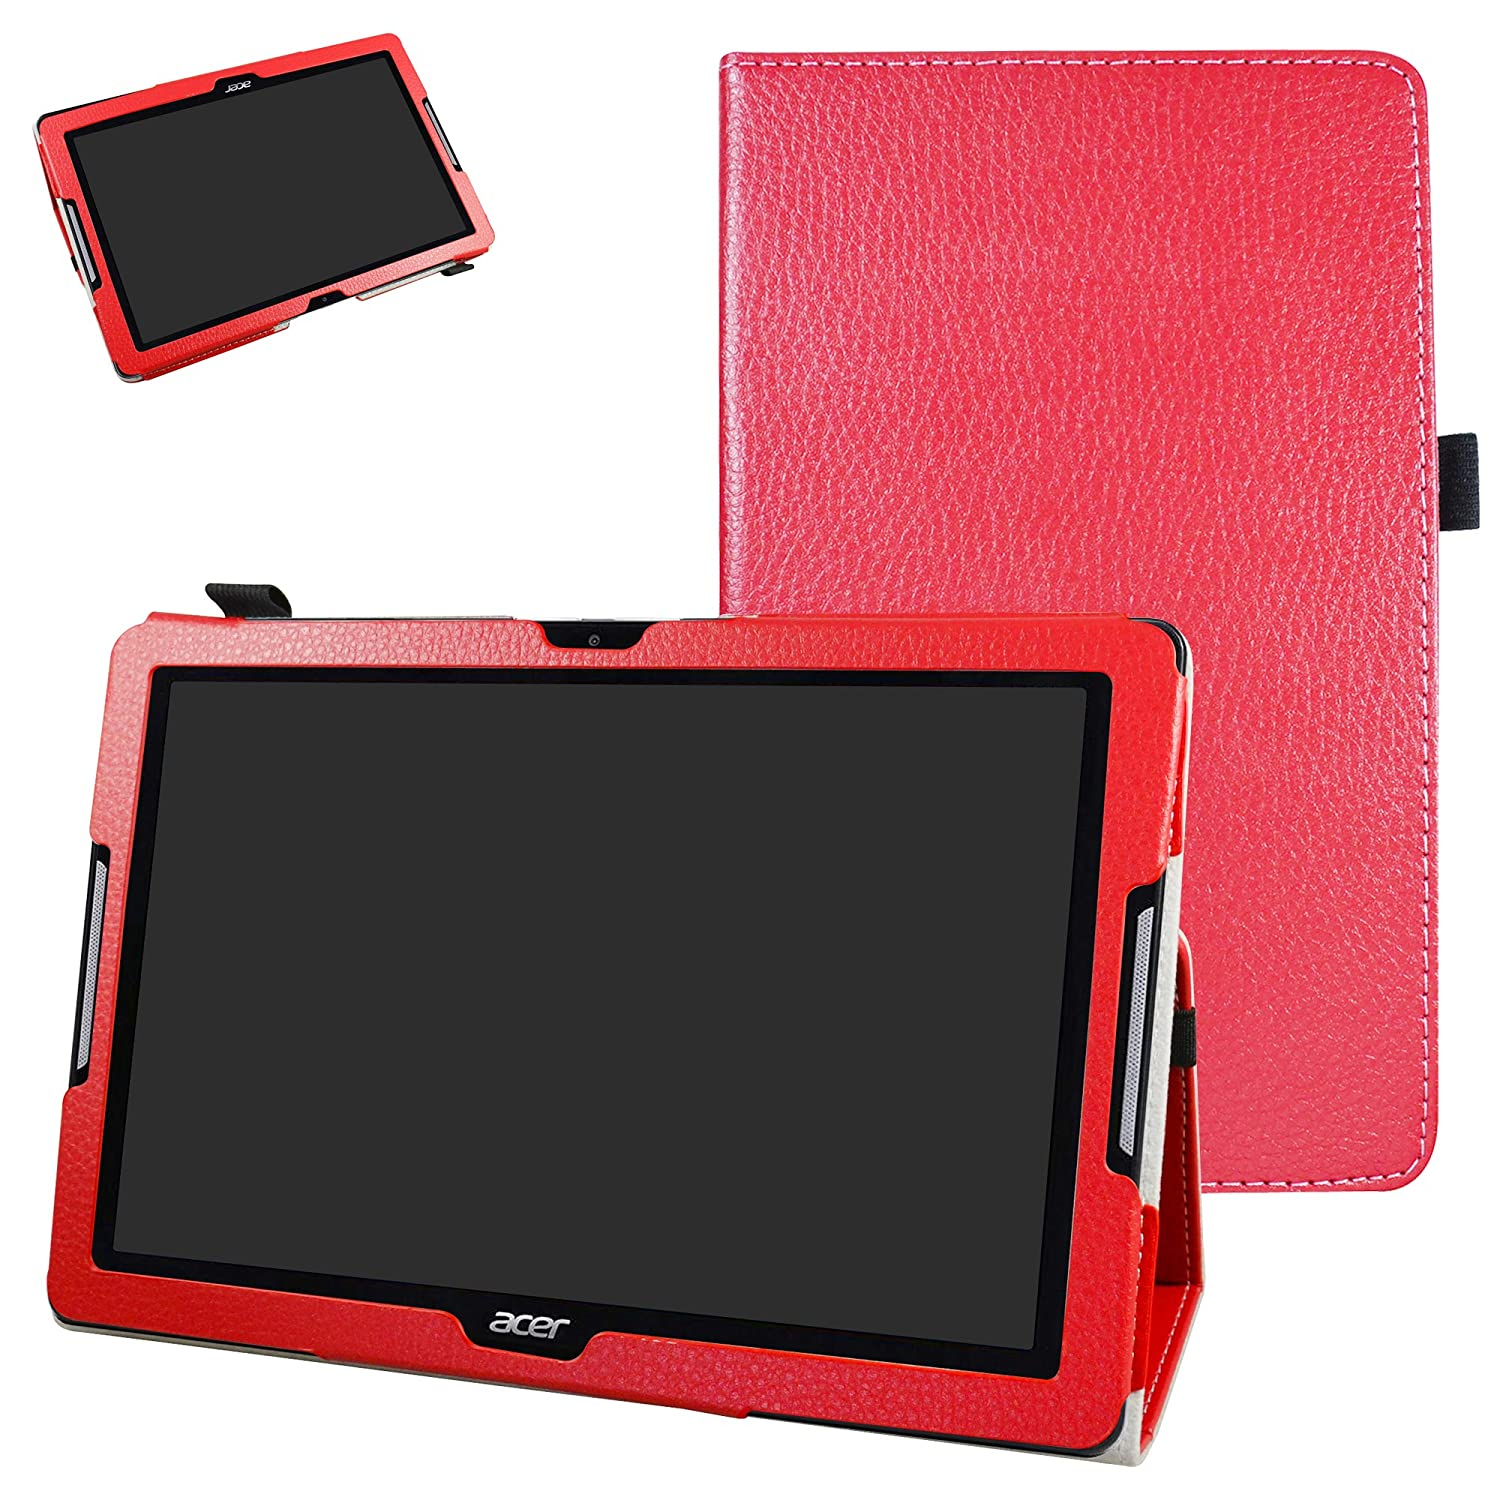 Acer Iconia One 10 B3-A30 Case,Mama Mouth PU Leather Folio 2-folding Stand Cover with Stylus Holder for 10.1' Acer Iconia One 10 B3-A30 Android Tablet, Black Bigmouthstore 10001387-1